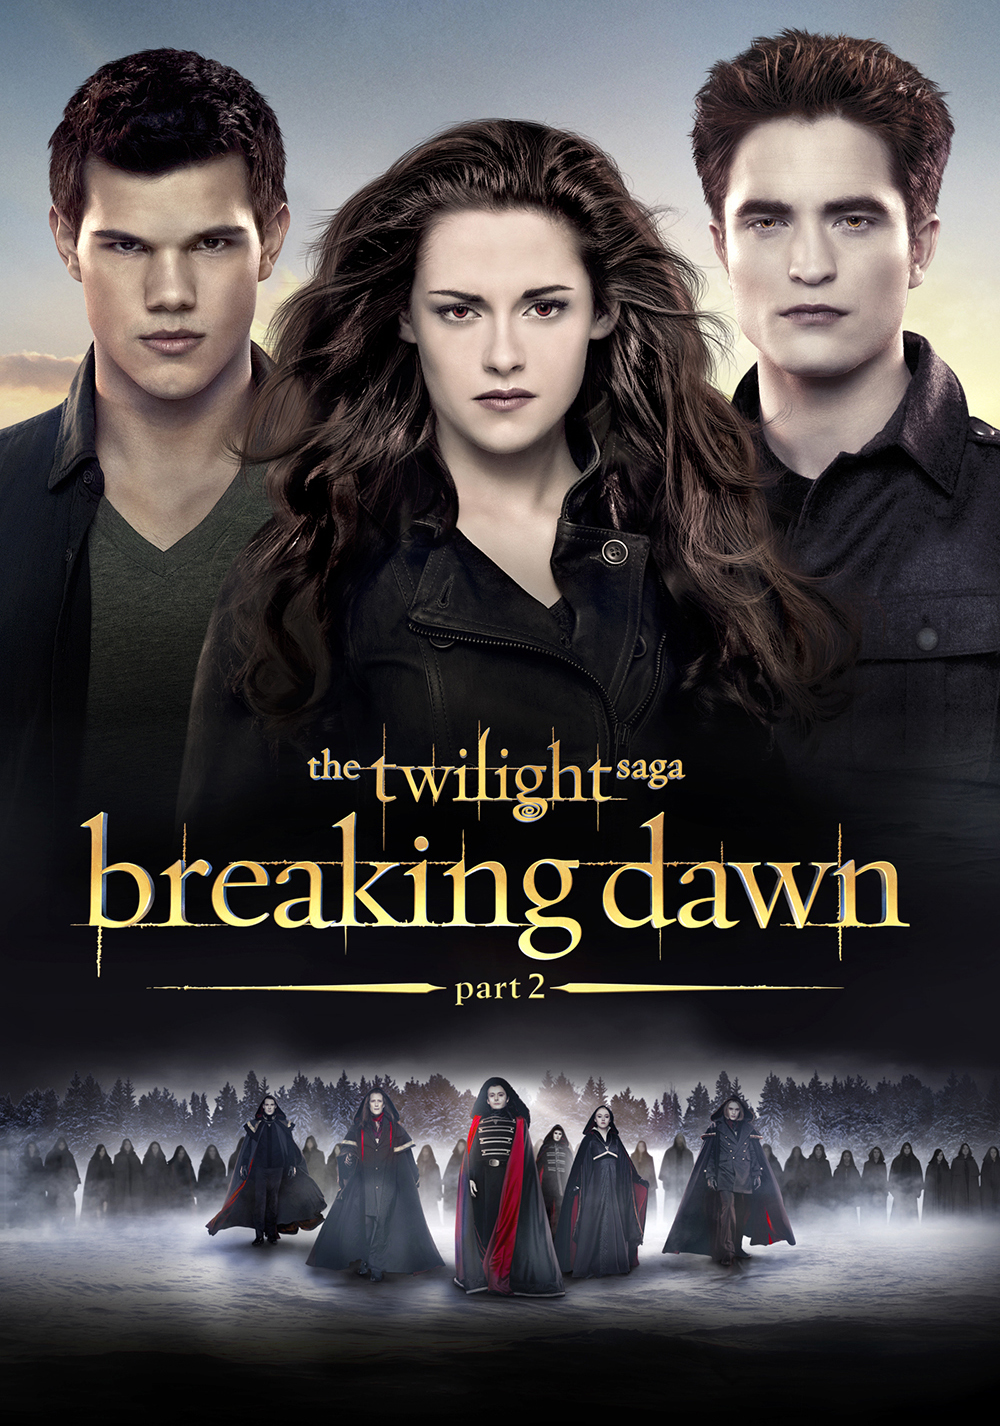 the-twilight-saga-breaking-dawn---part-2-53c39704de23f.jpg